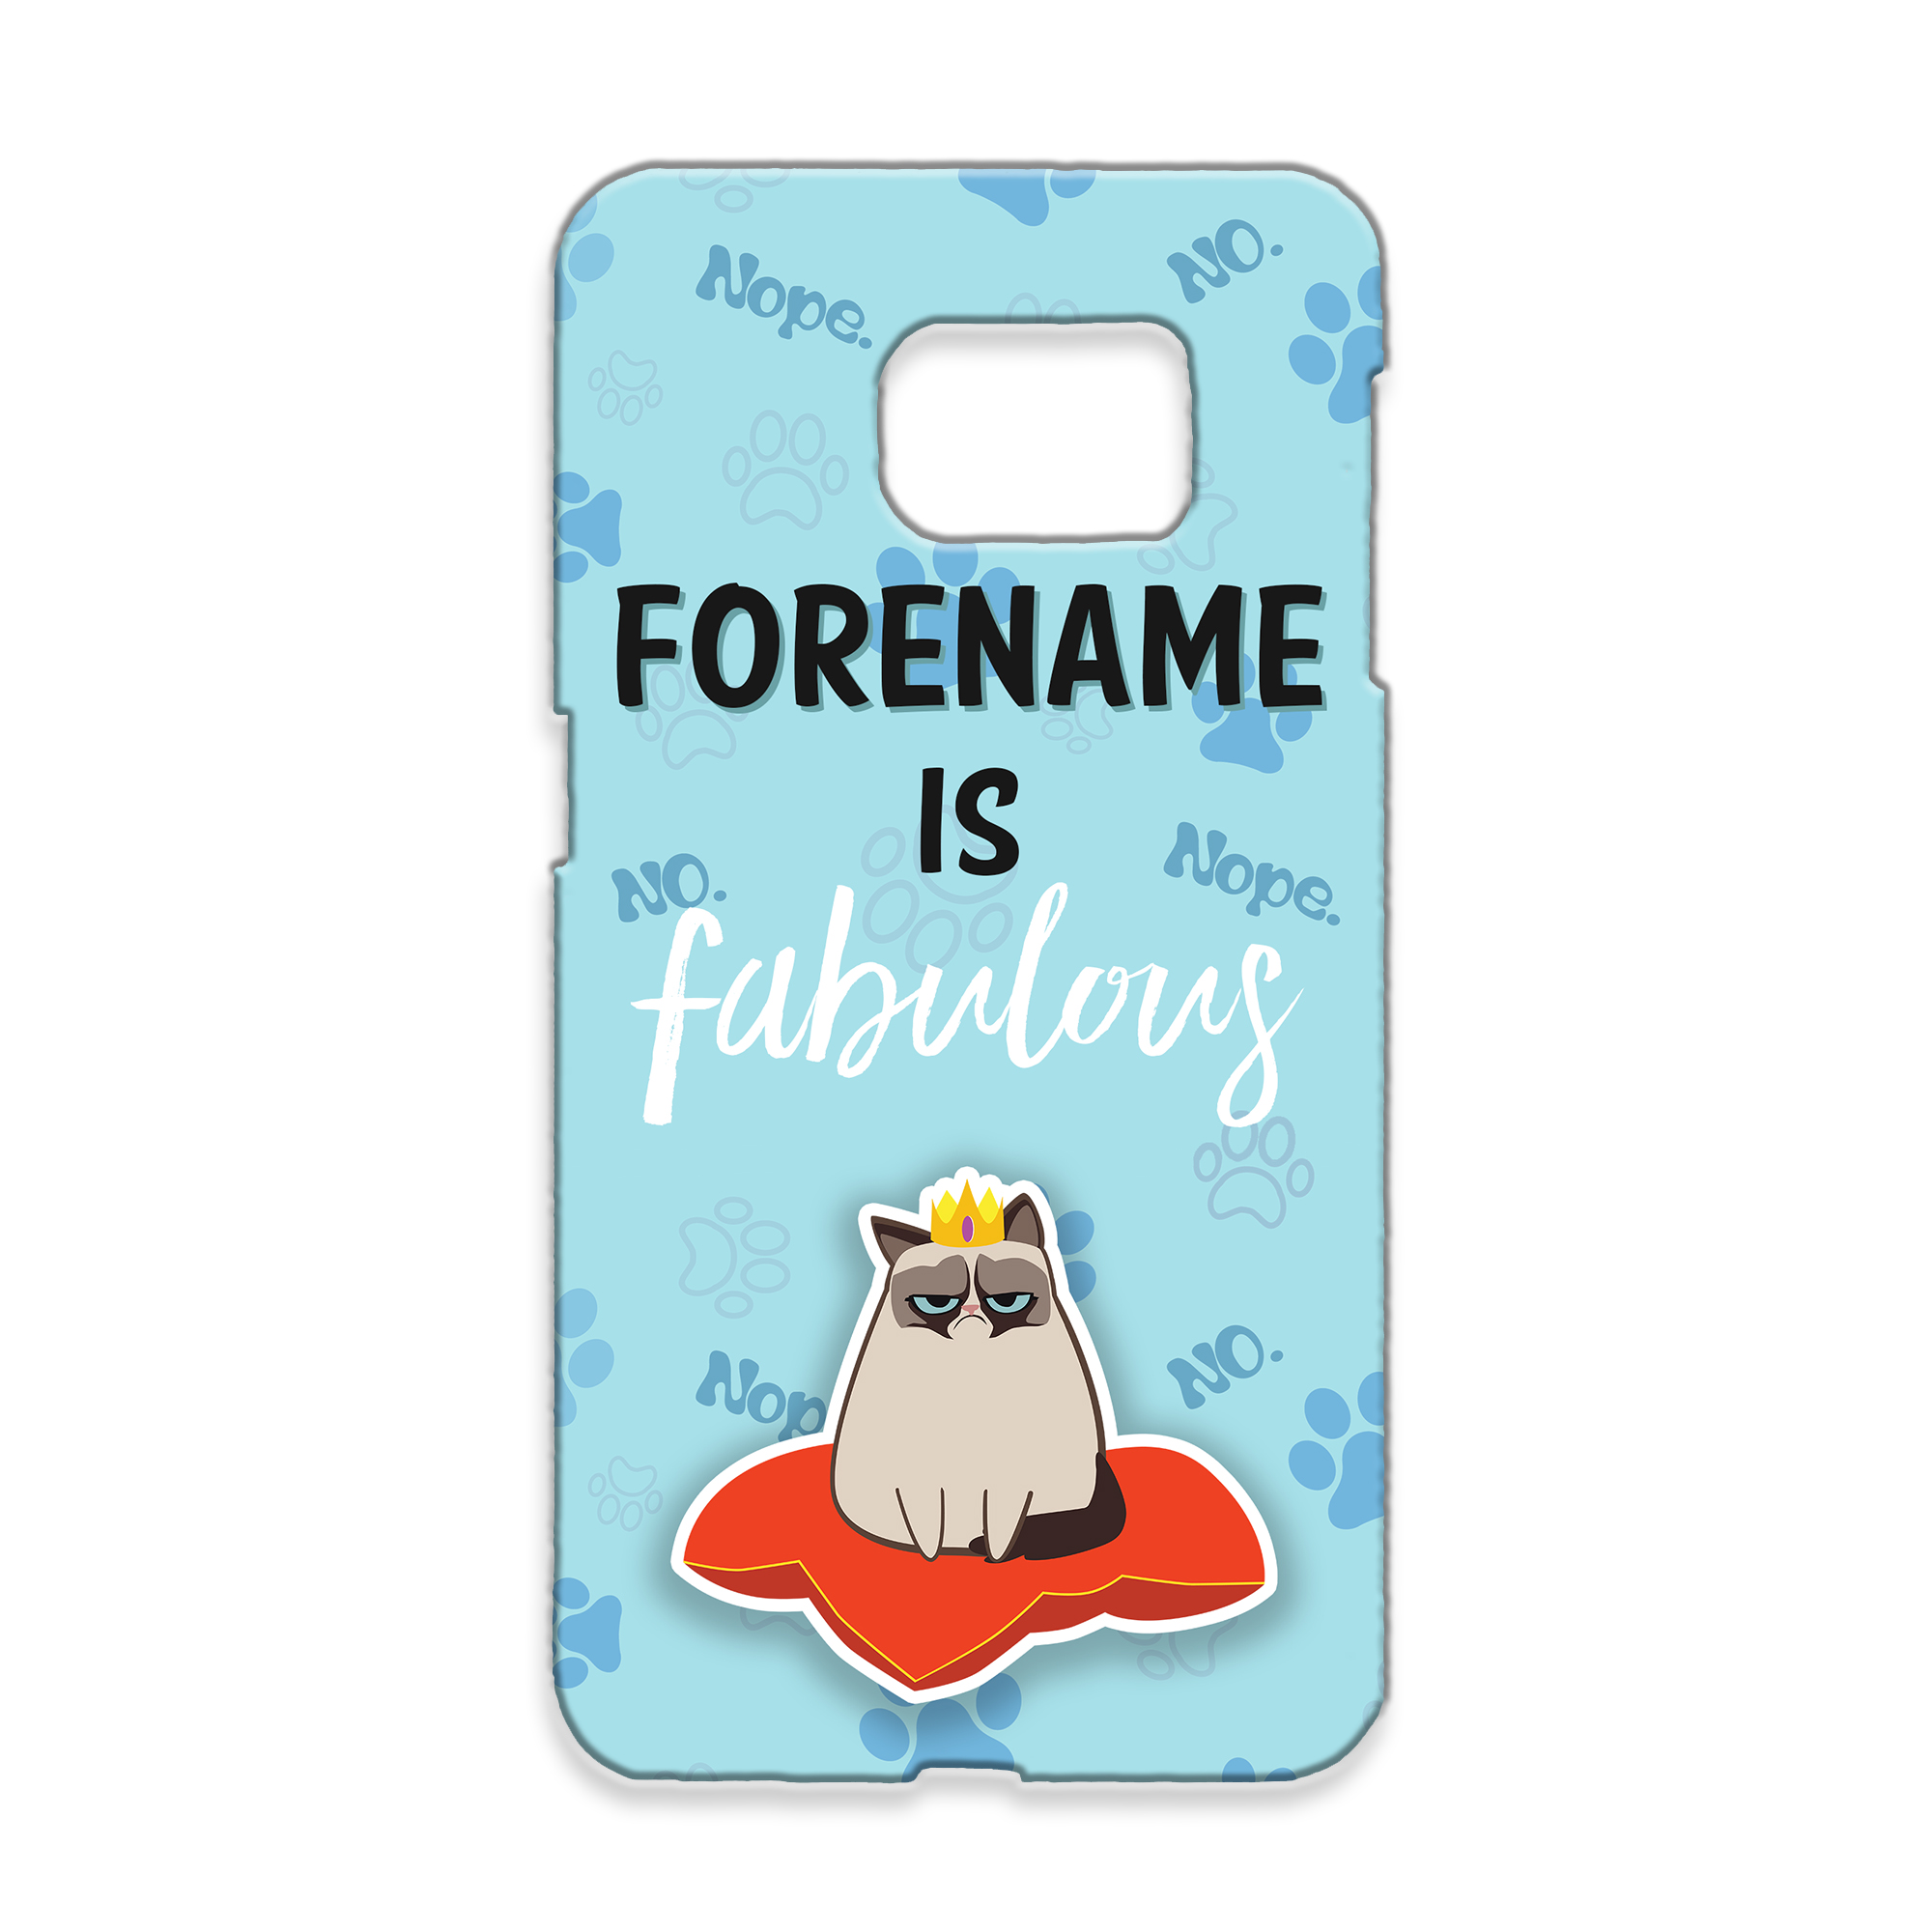 Grumpy Cat Emoji - Fabulous Samsung Case Blue